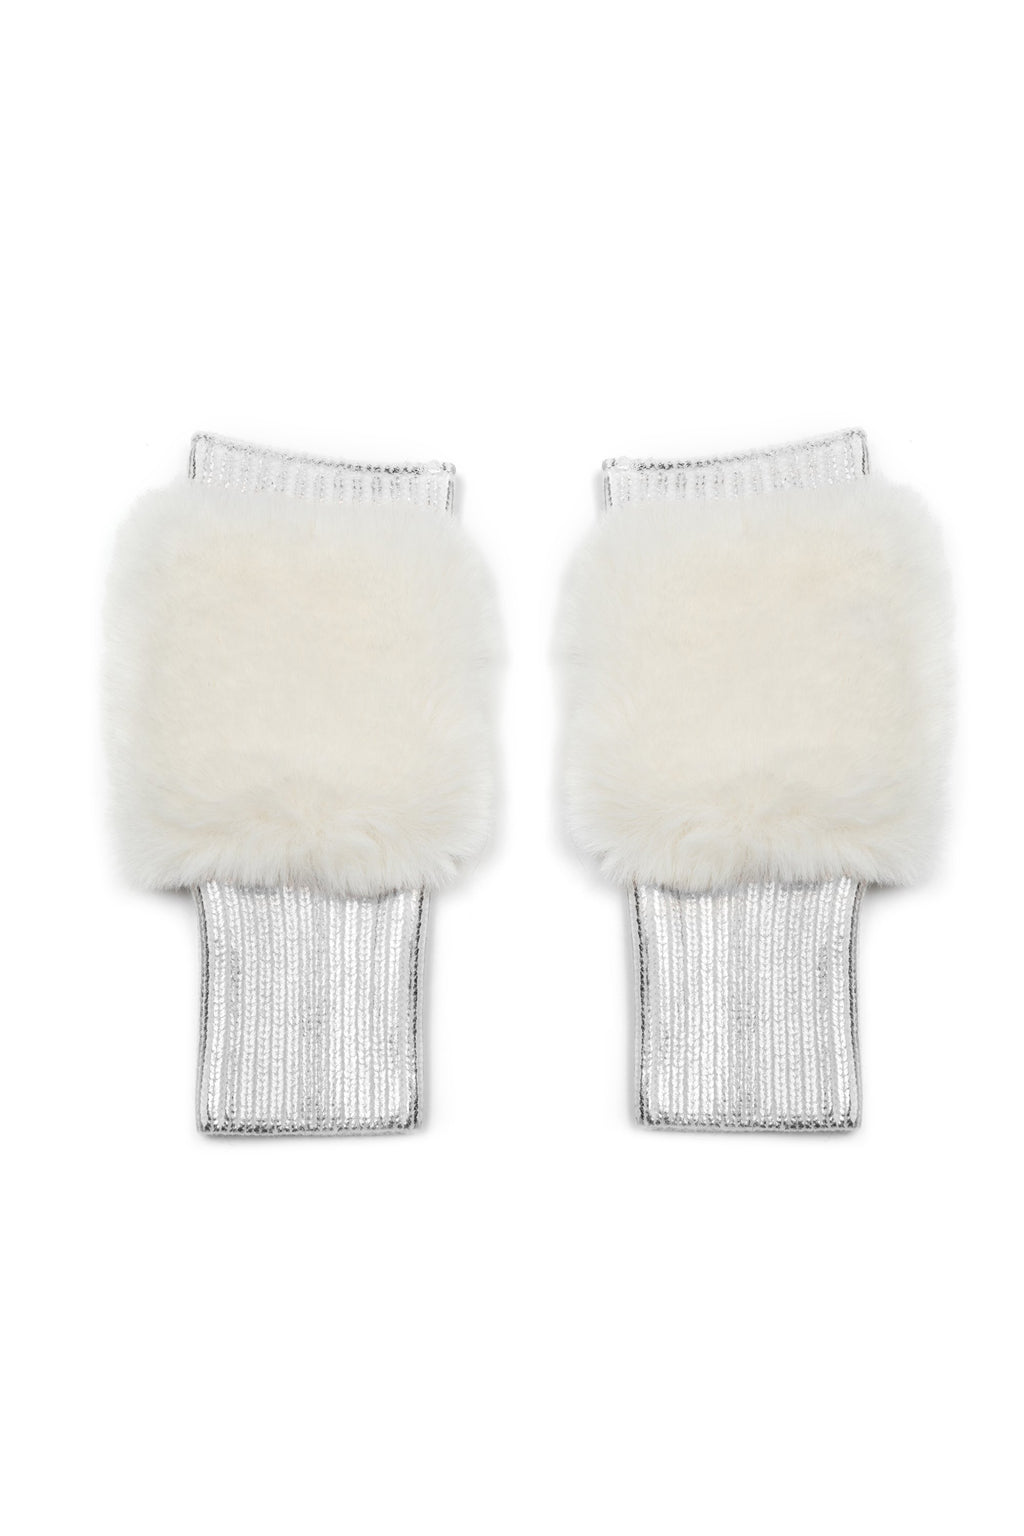 Jocelyn East Broadway Metallic Faux Fur Mittens - Multiple Colors!